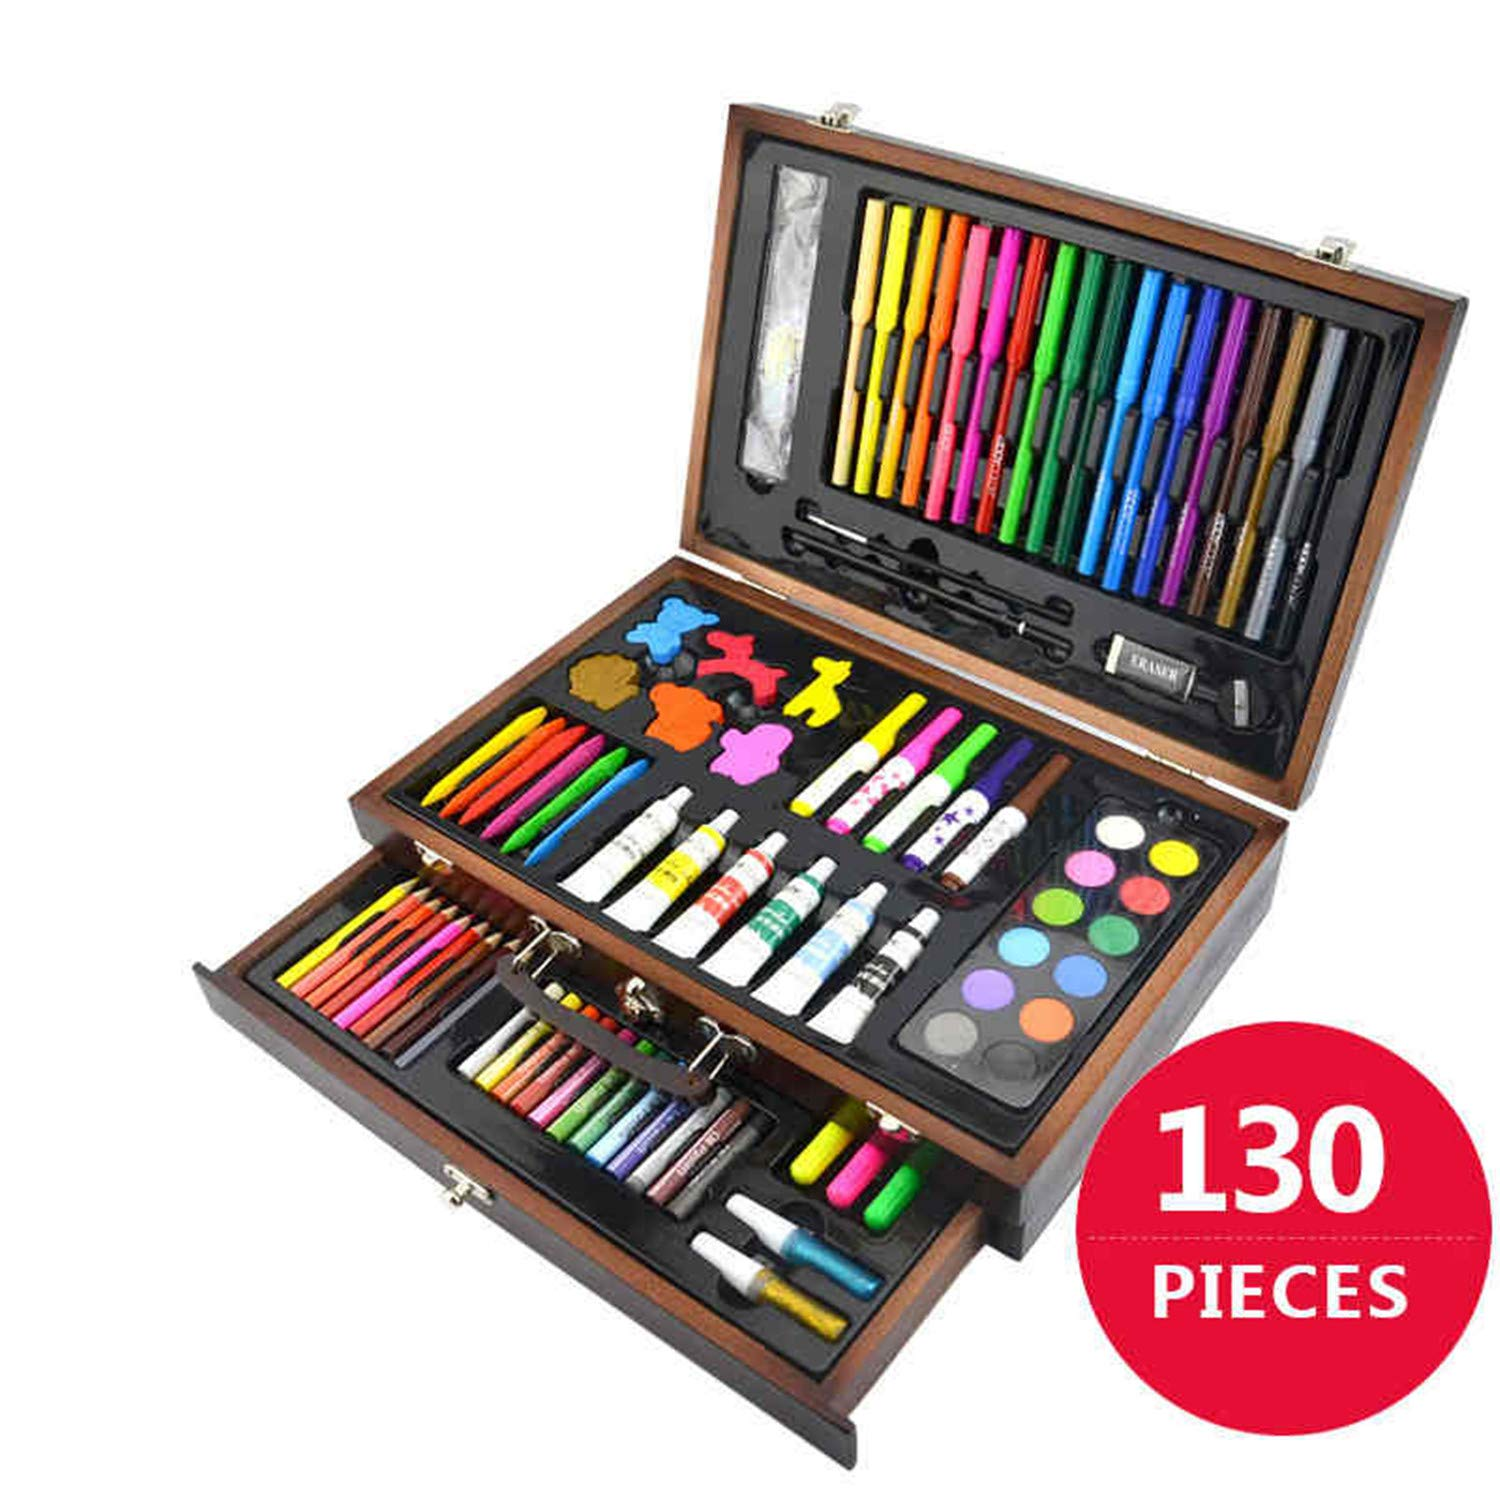 130 Piecs Drawing Pencils Color Pens Crayons Case Art Painting Set for Children Kids with Wooden Case Art Drawing Tools